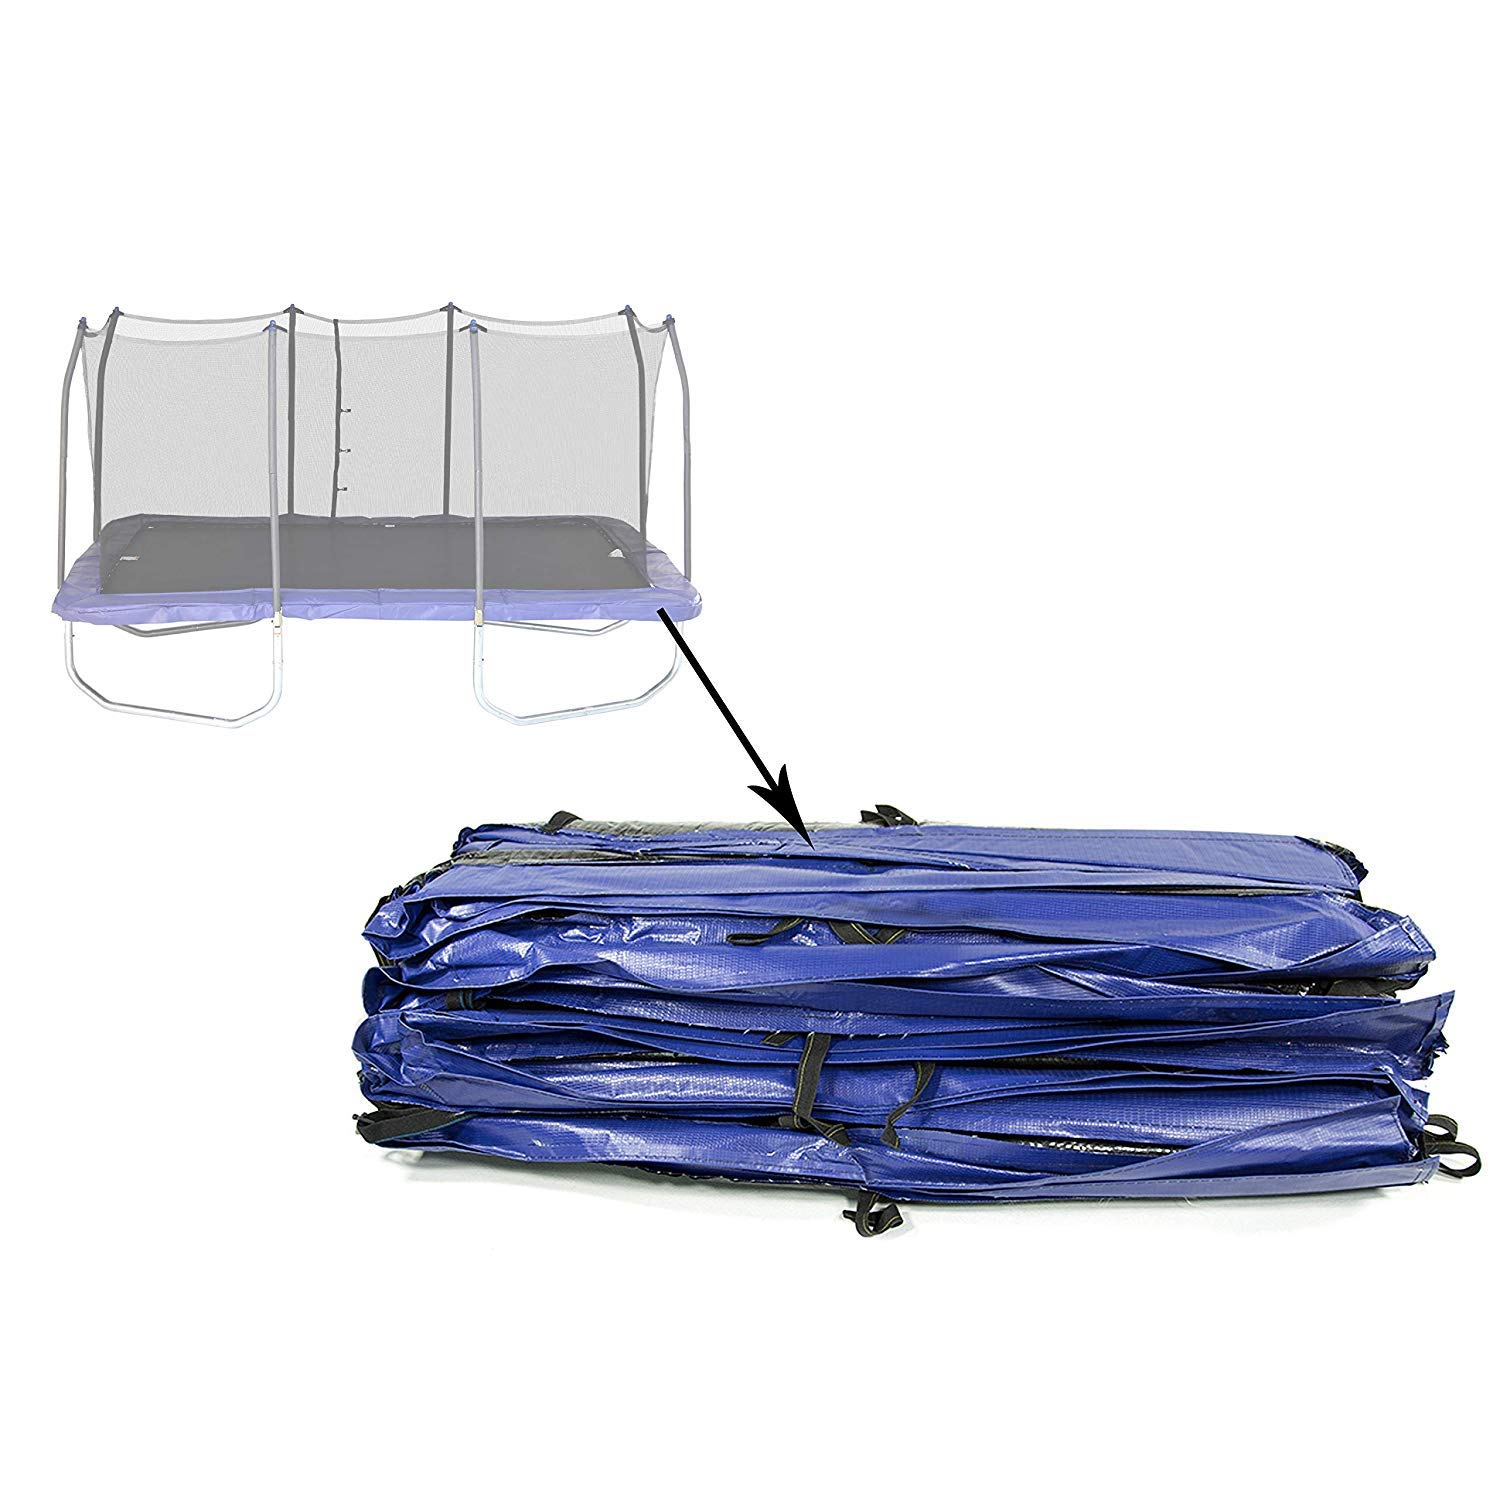 Skywalkers Trampolines Safety Pad 9x15 ft Replacement Parts Accesories. 9'x15' Rectangle Spring Blue Vinyl-Coated for Trampoline. Ultra High UV Protection. Compatibility STRC915